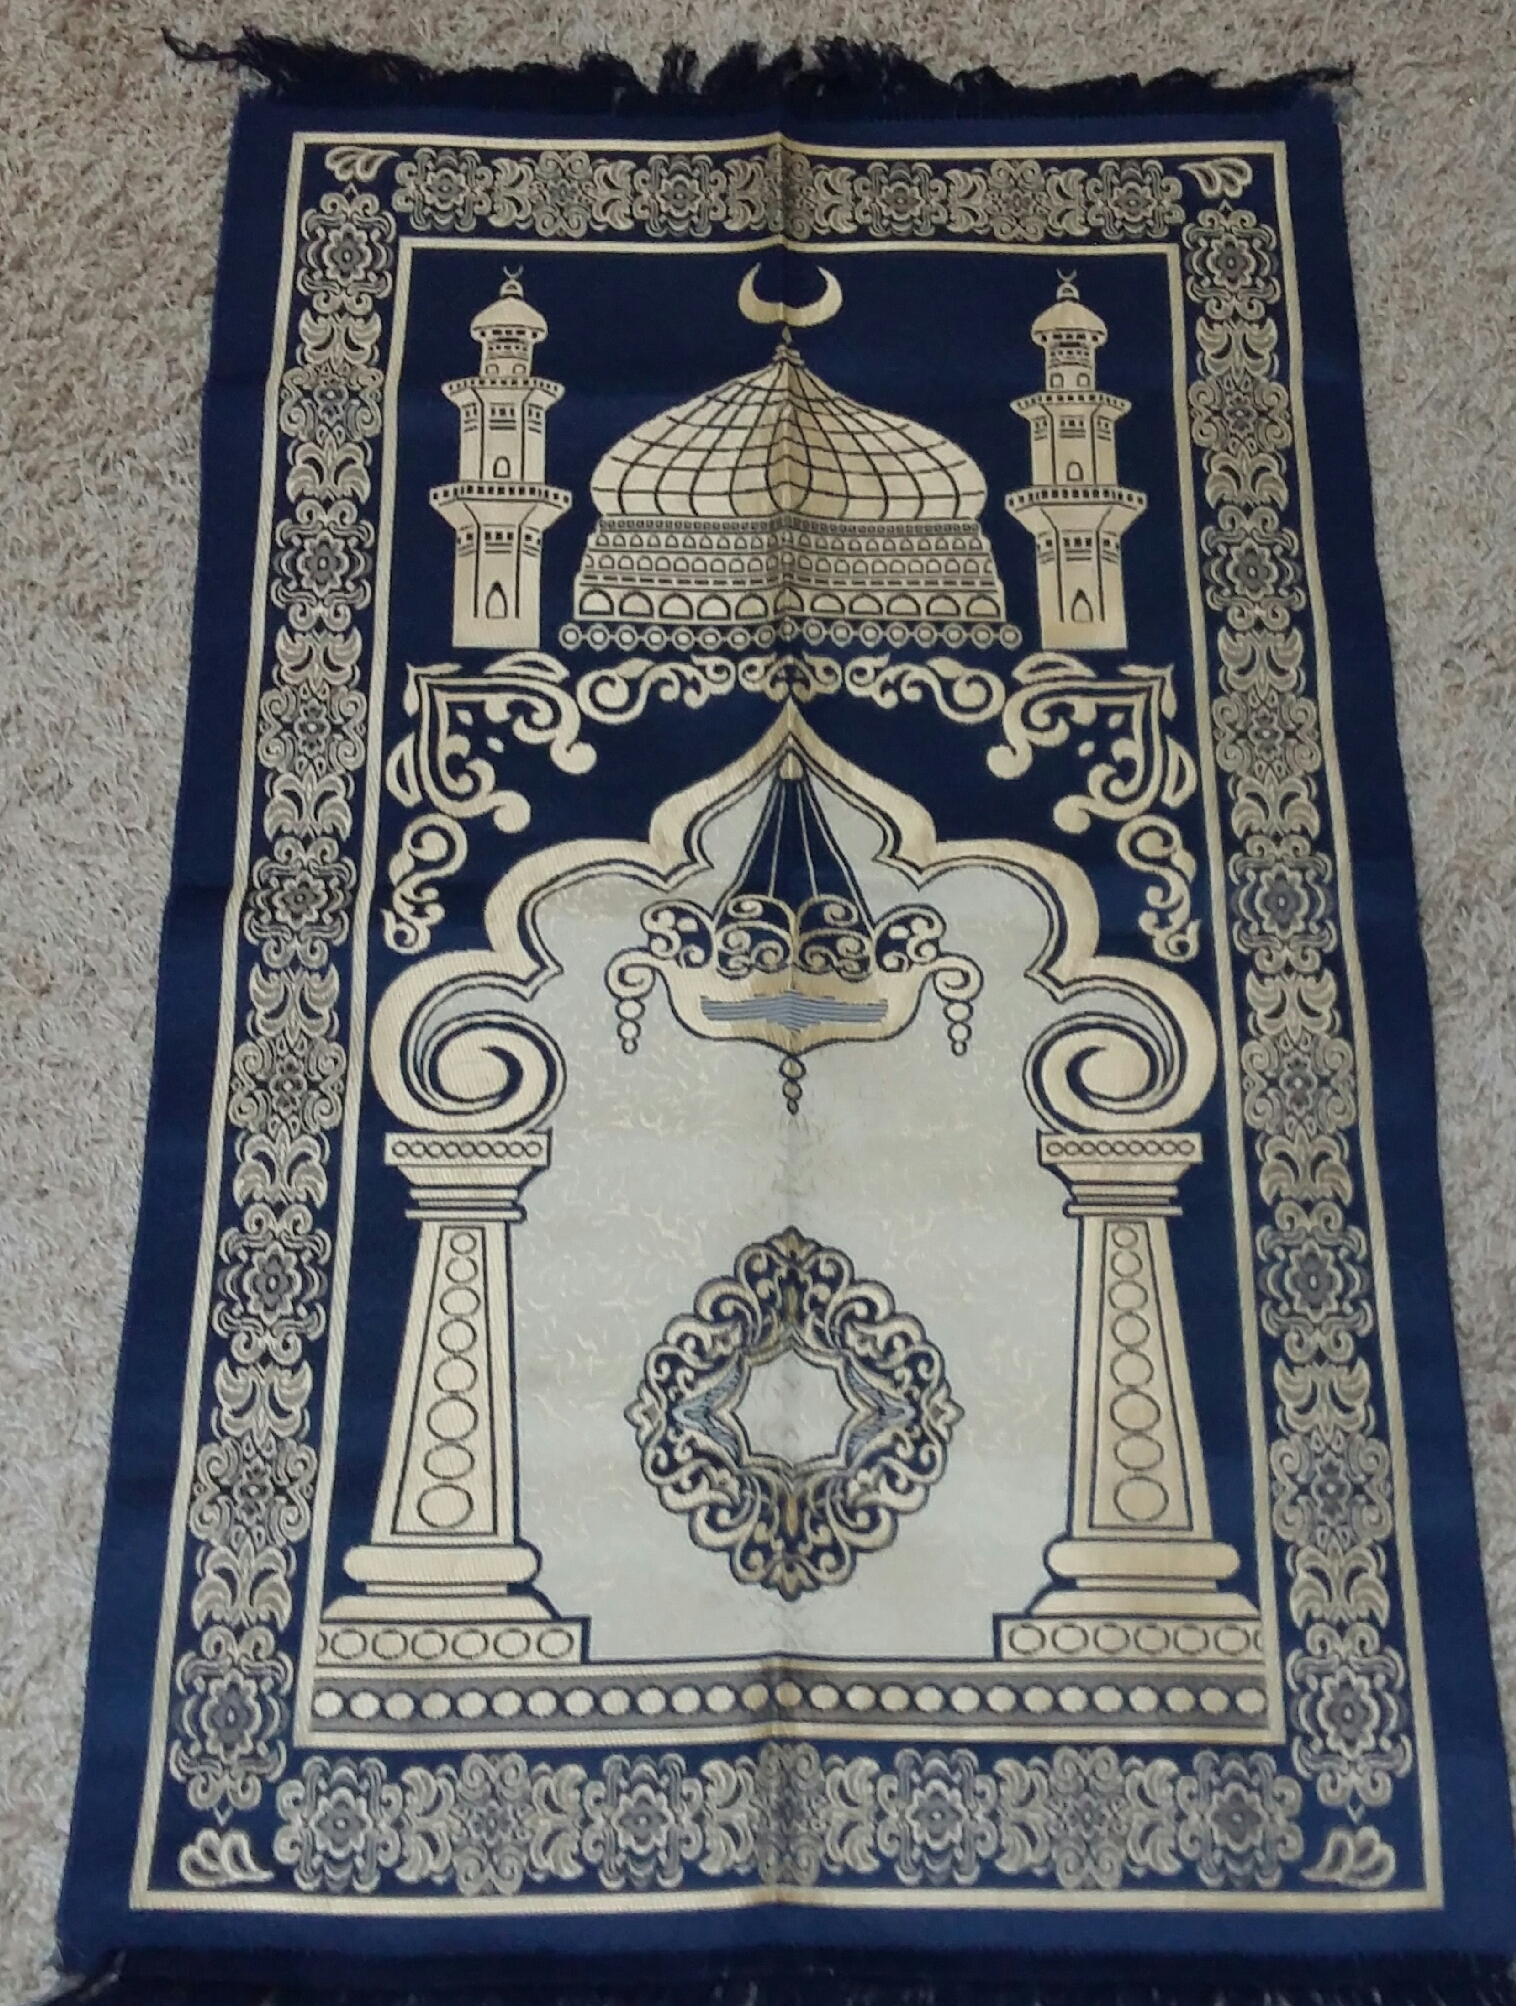 tapis de pri re fin acc pri 00007 zamanshop le site pour vos achats islamiques. Black Bedroom Furniture Sets. Home Design Ideas